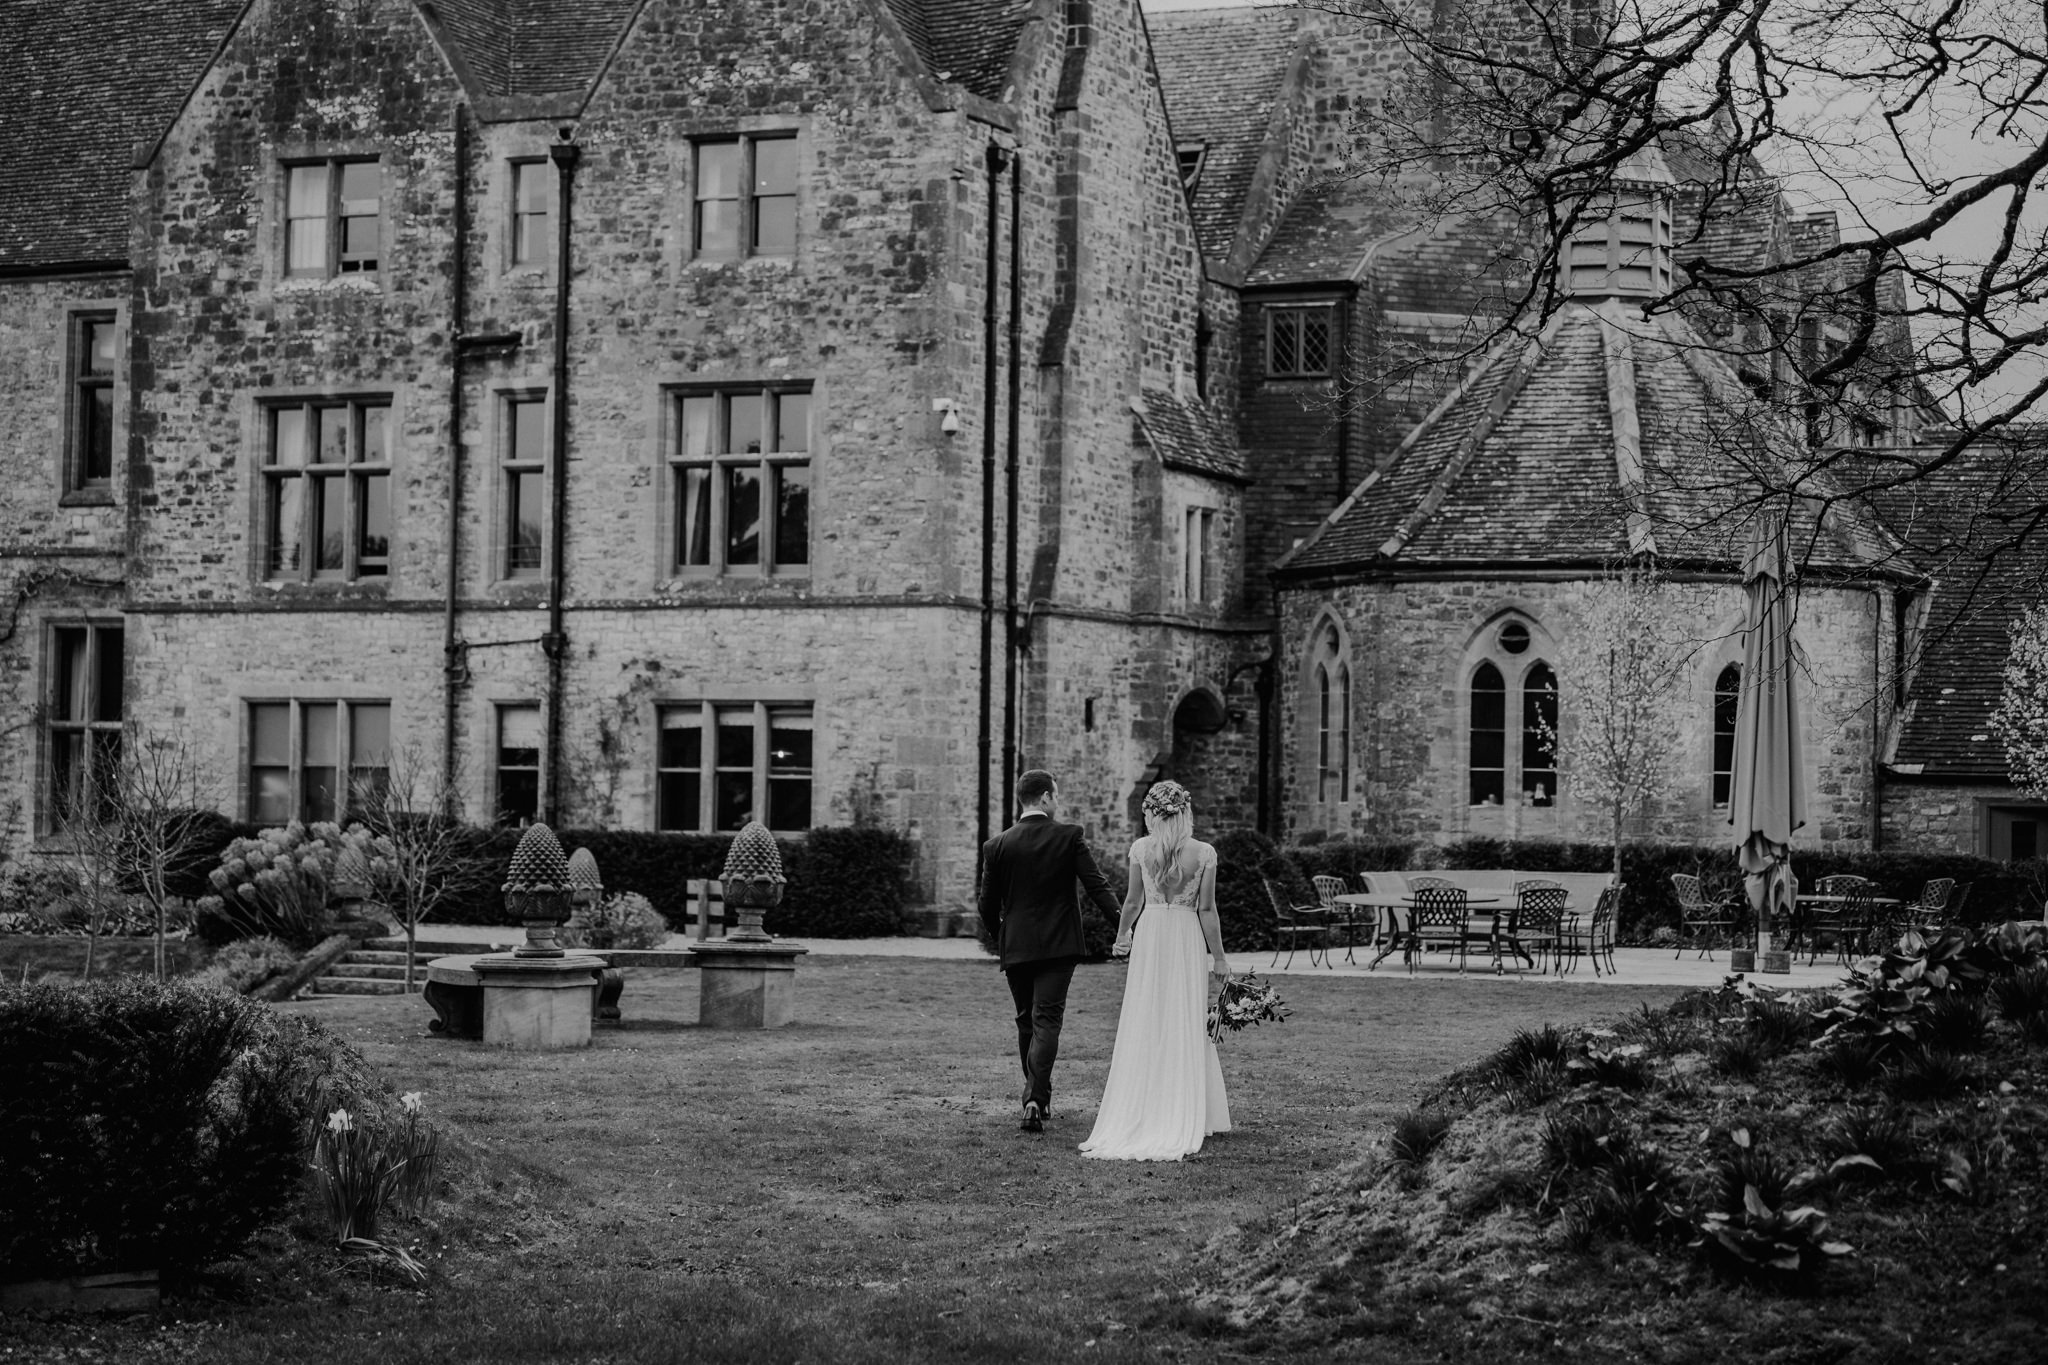 HUNTSHAM-COURT-WEDDING-PHOTOGRAPHER-DEVON-CORNWALL-92.jpg